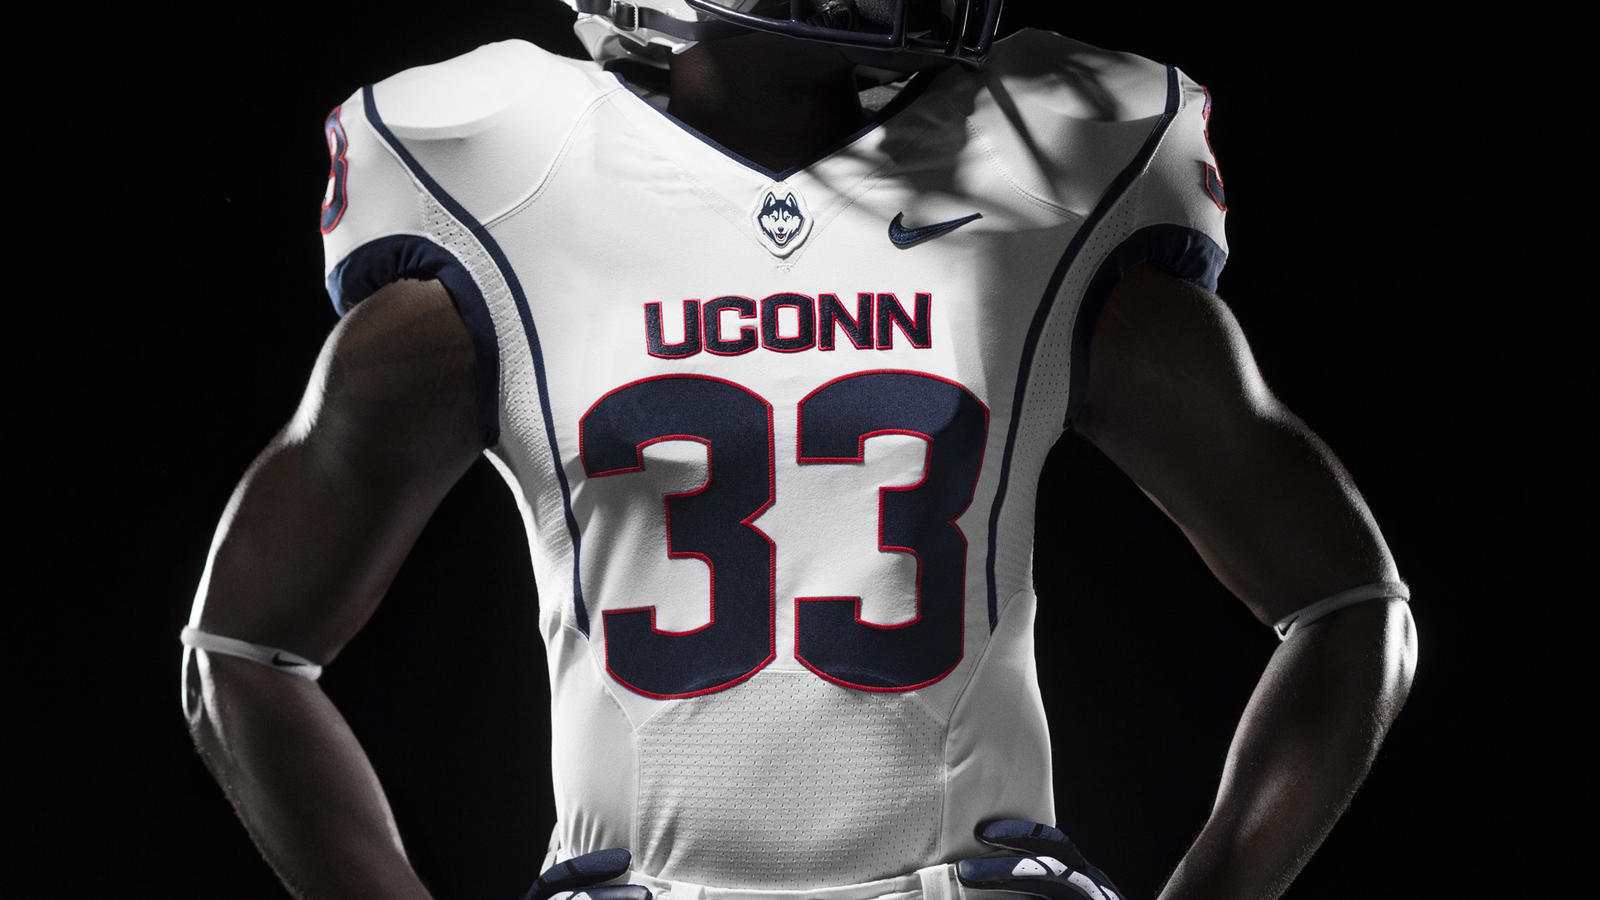 de2f44c2 Today the University of Connecticut Division of Athletics unveiled an updated  visual identity and new uniforms for the Huskies. The new identity includes  ...